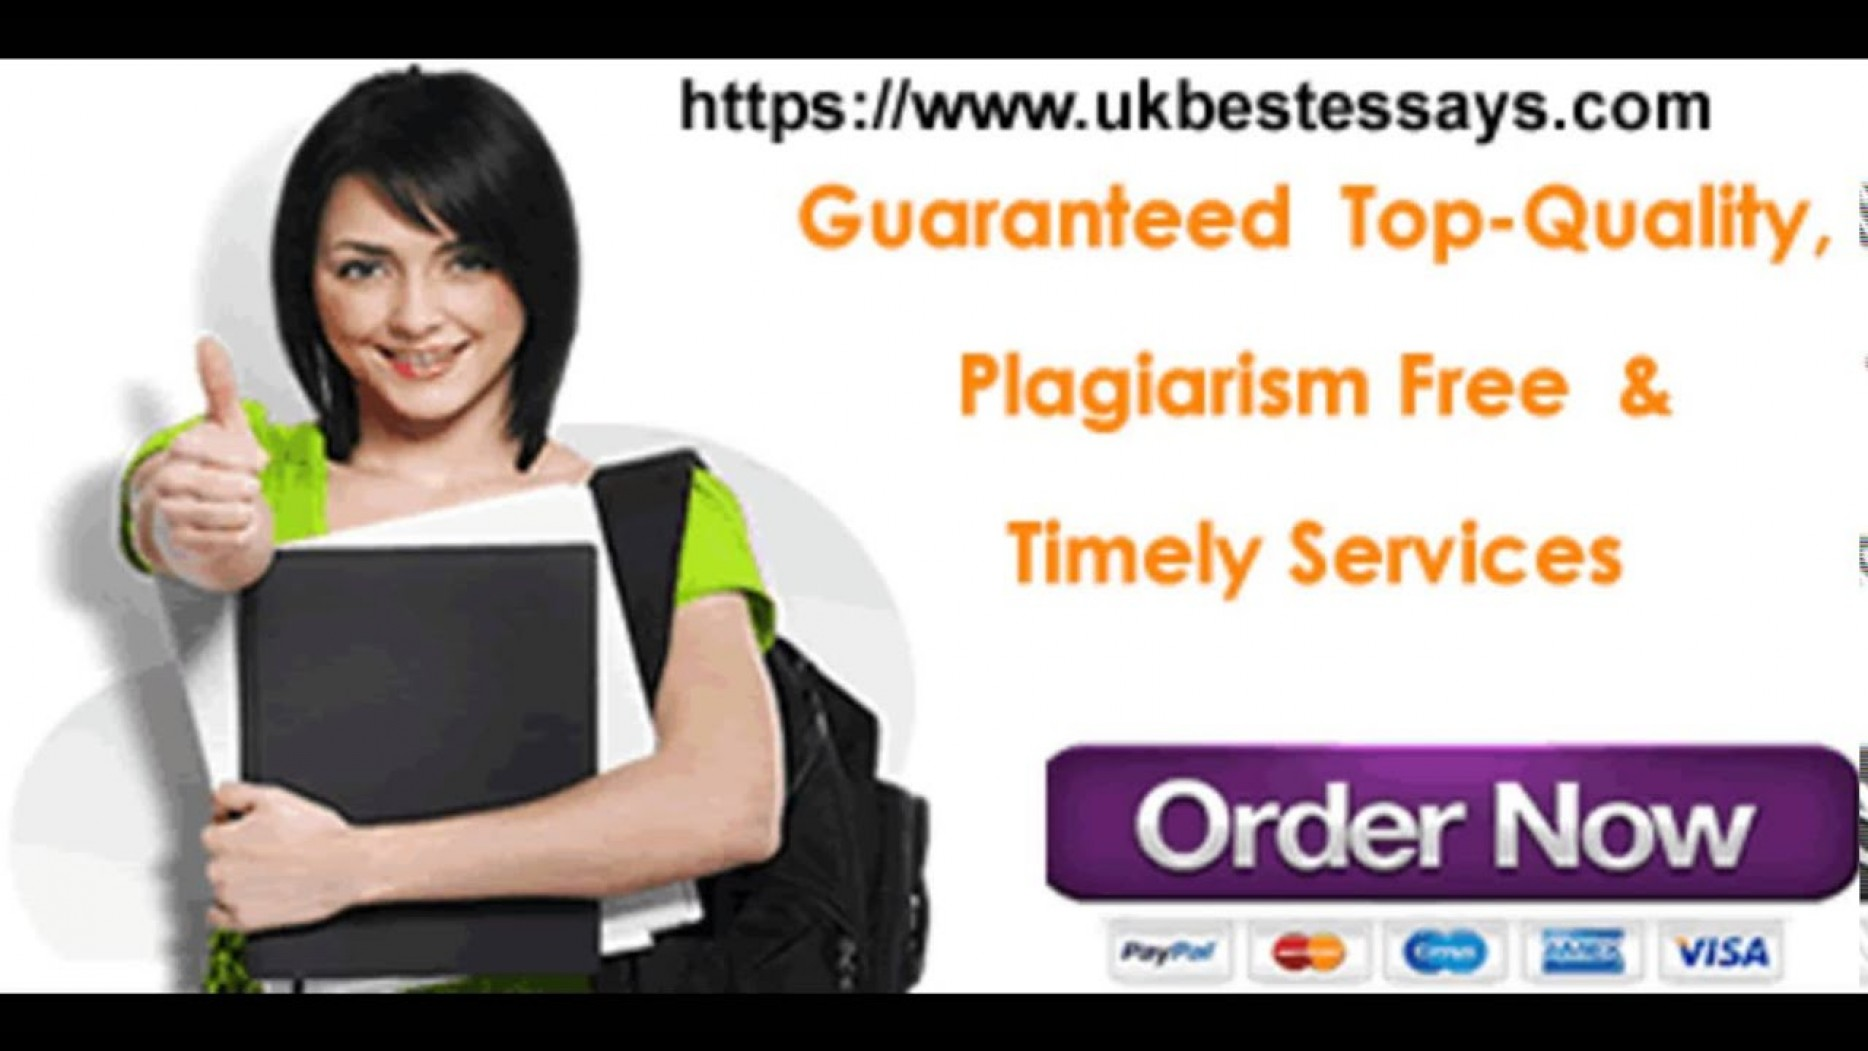 005 Essay Writing Services Example Service Research Stupendous Reddit Custom Canada Reviews Uk 1920